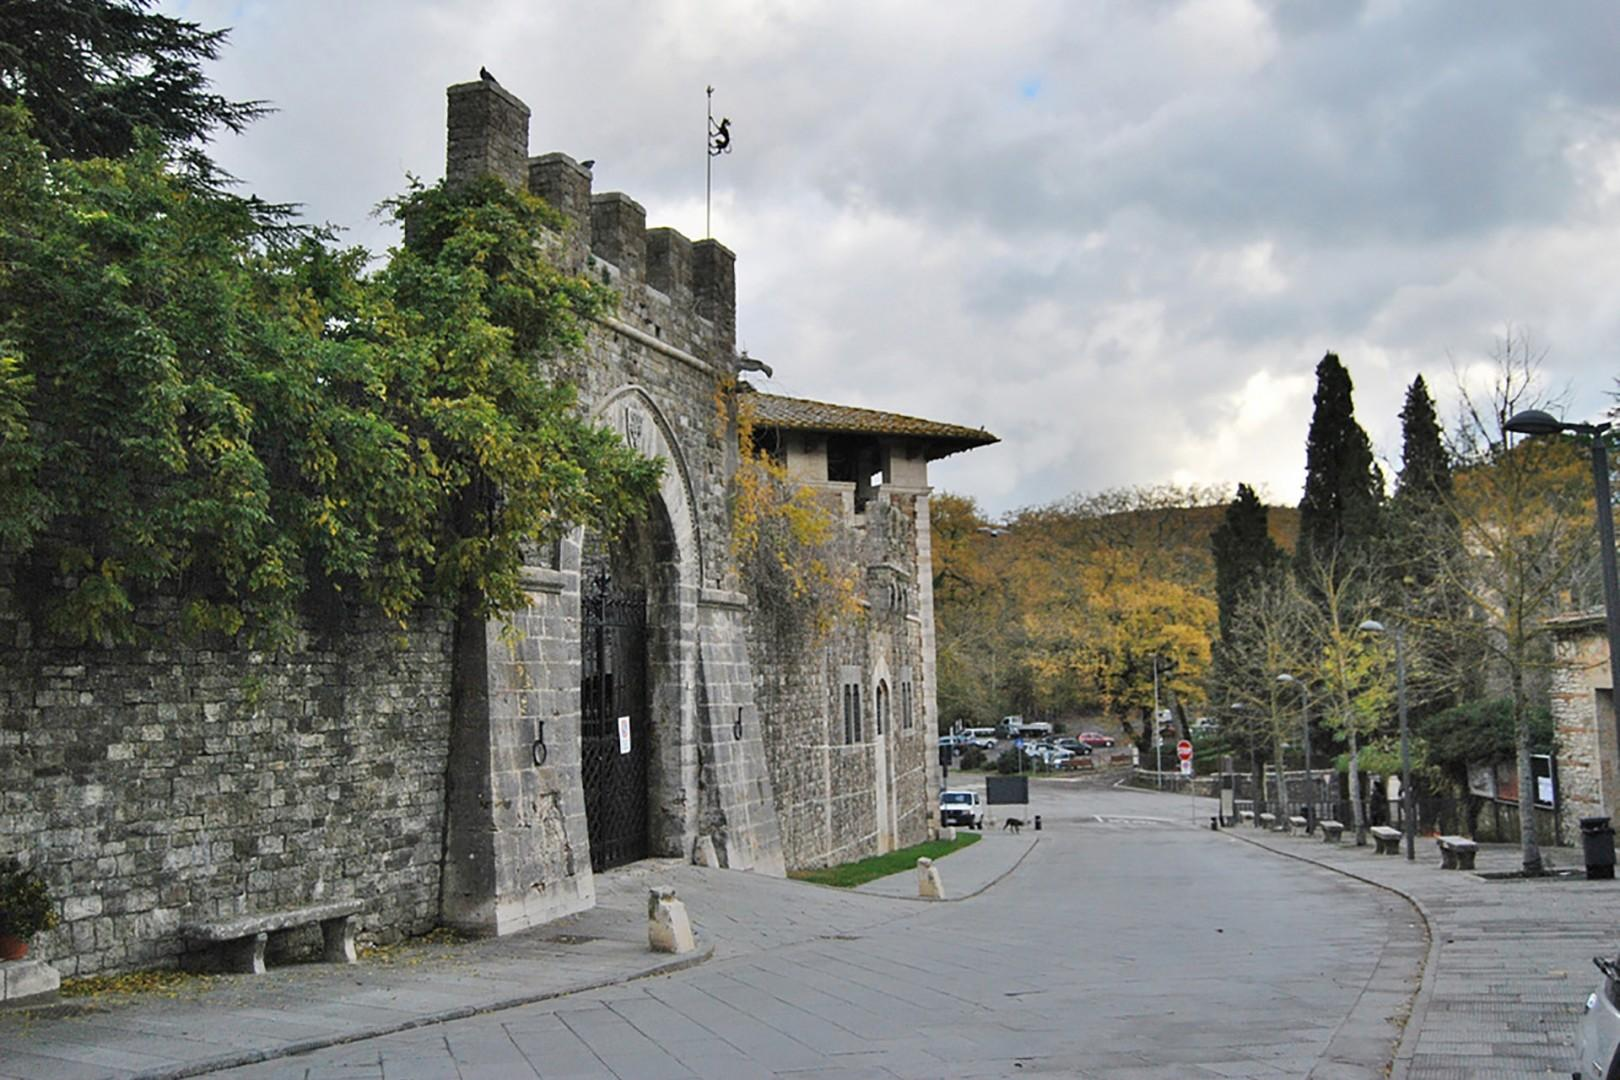 San Casciano dei Bagni is so convenient because it is just a 5-minute drive from the villa.